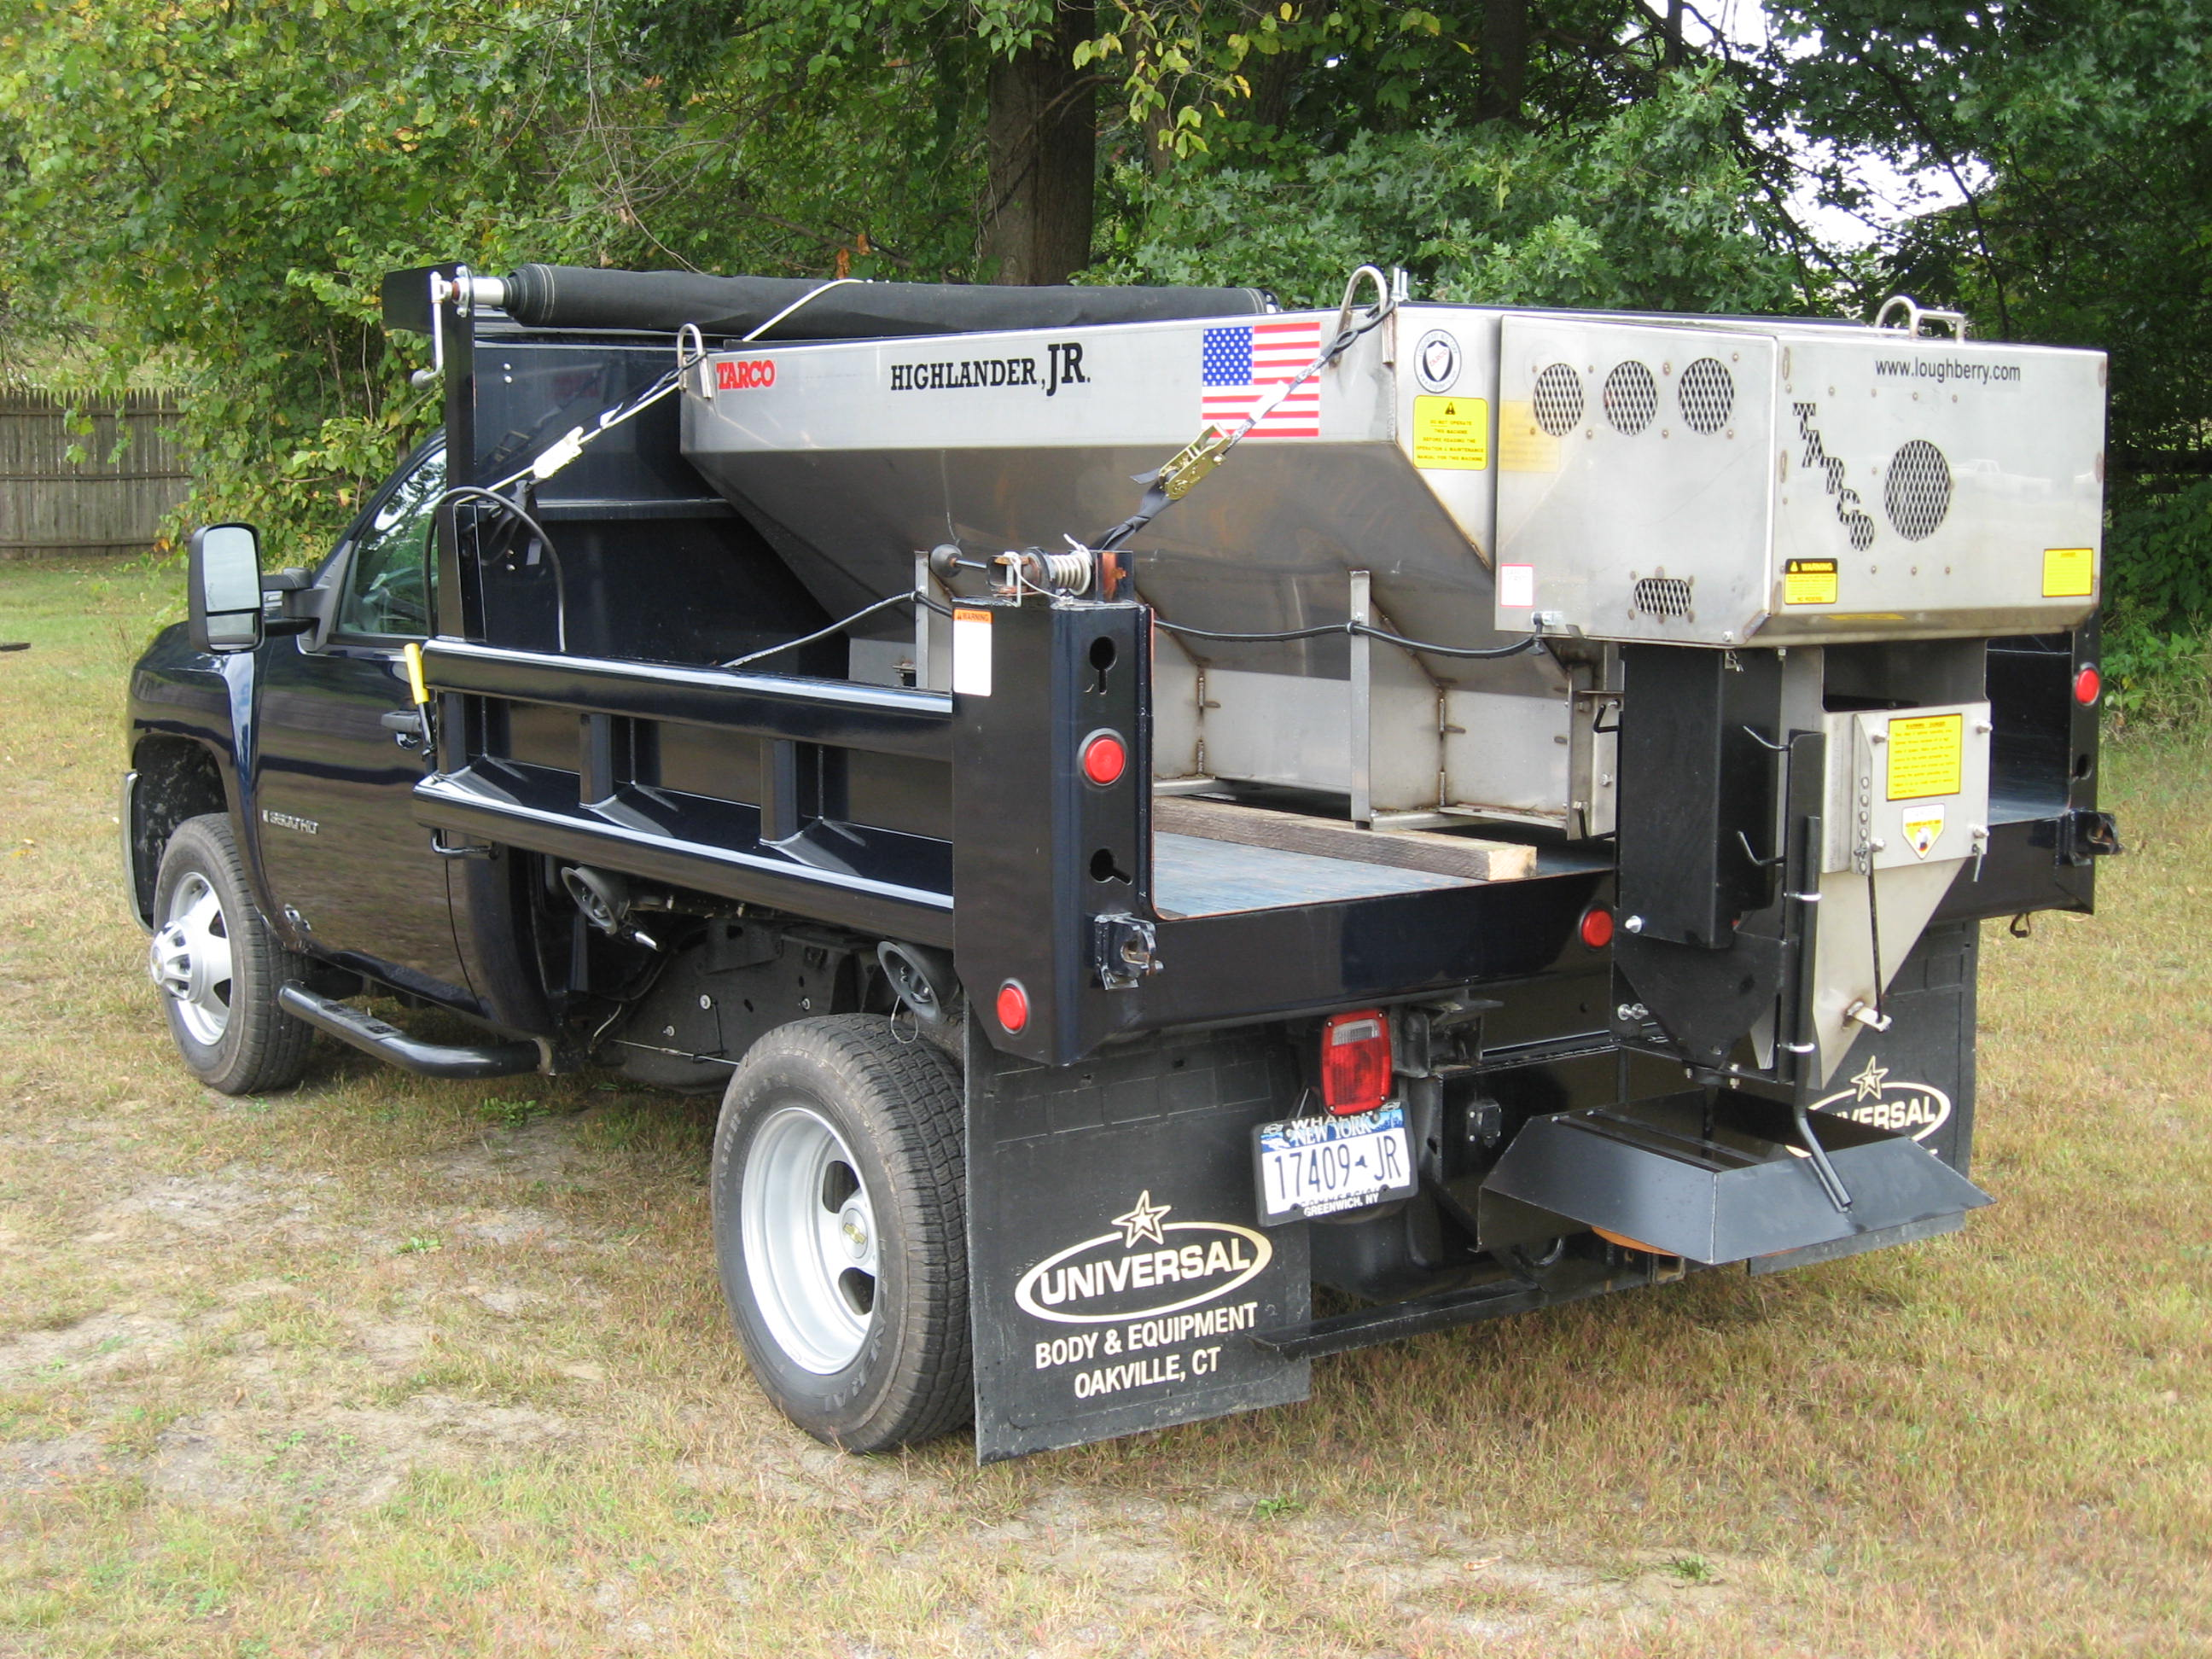 All season dump bodies, tire recycling machines, vacuum leaf loader boxes, salt and sand spreaders, v-box spreaders, and other municipal equipment manufactured by Loughberry Mfg. Corp. under the Tarco brand.